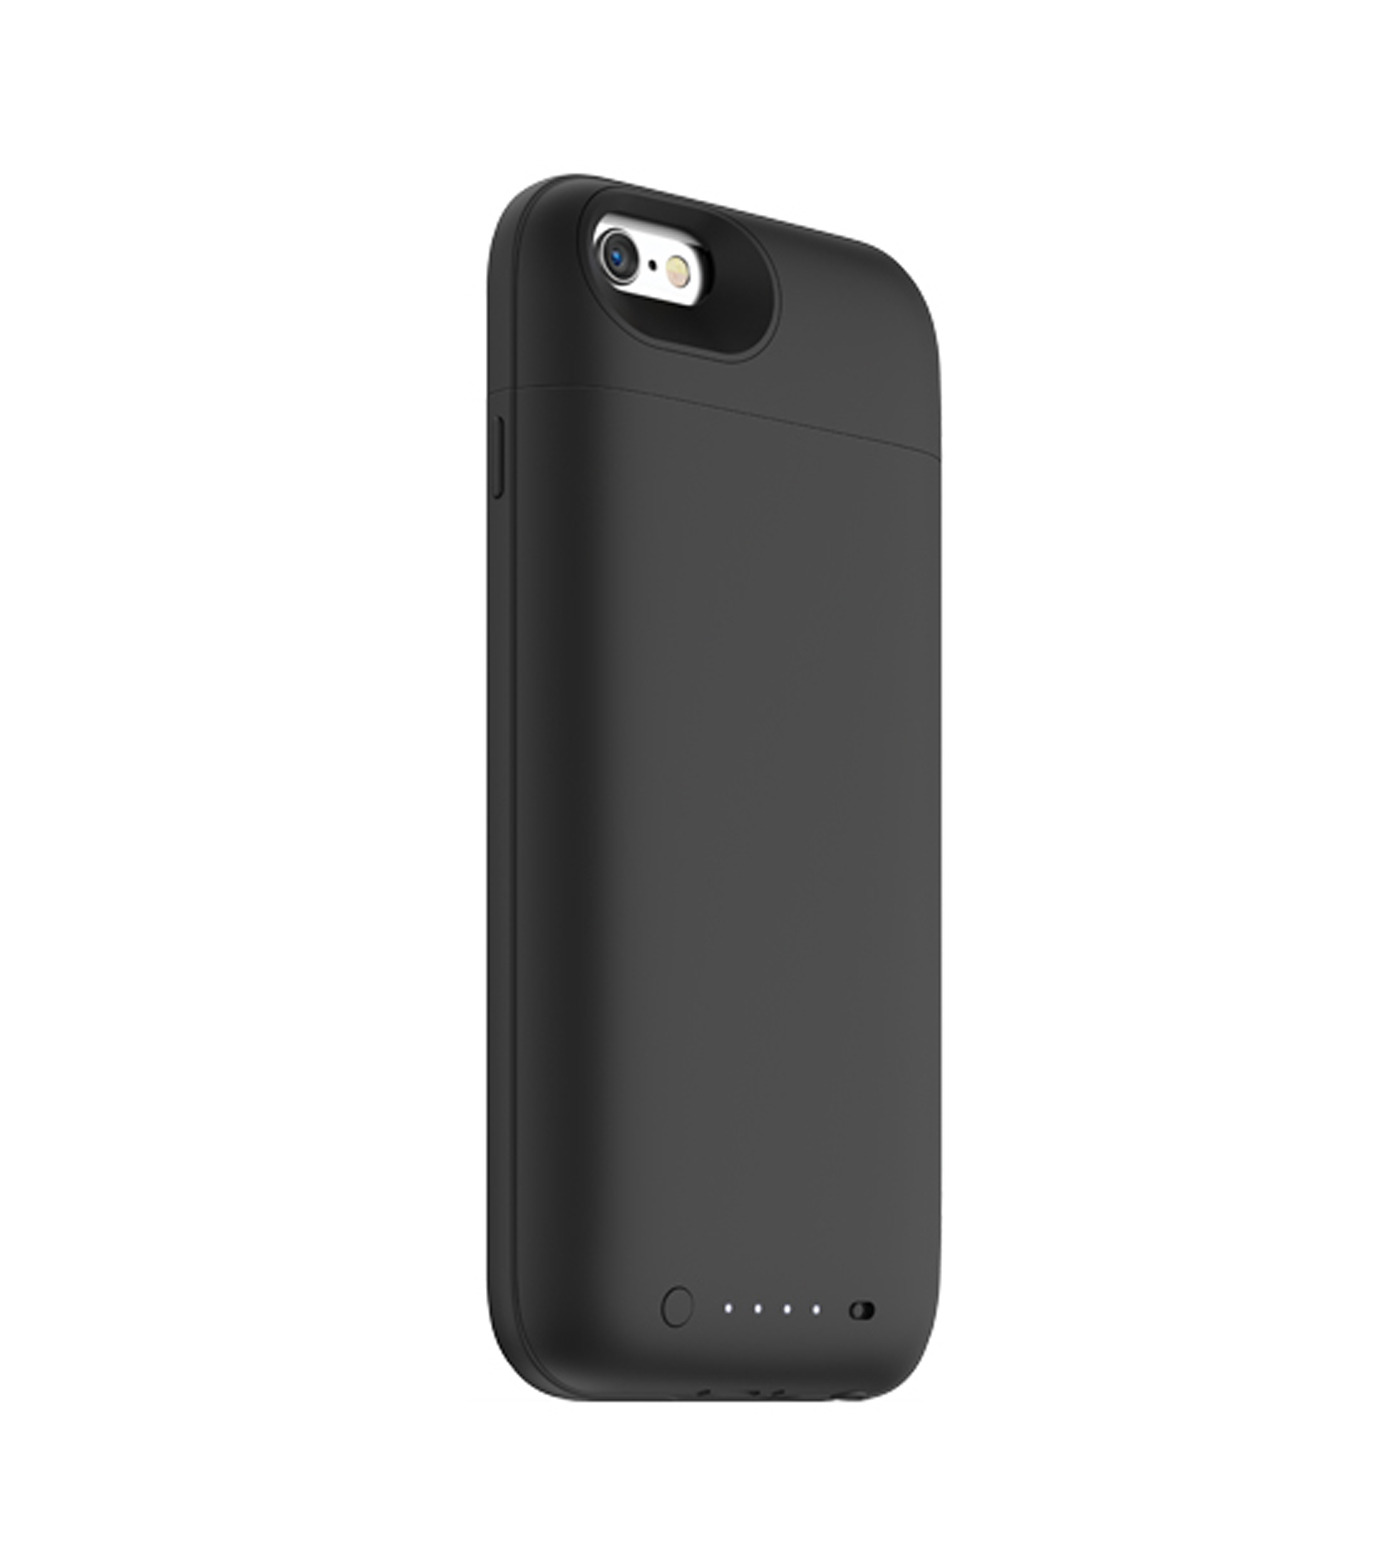 Mophie(モーフィー)のmophie juice pack air for iPhone 6-BLACK(ケースiphone6/6s/case iphone6/6s)-MOP-PH-0068-13 拡大詳細画像2